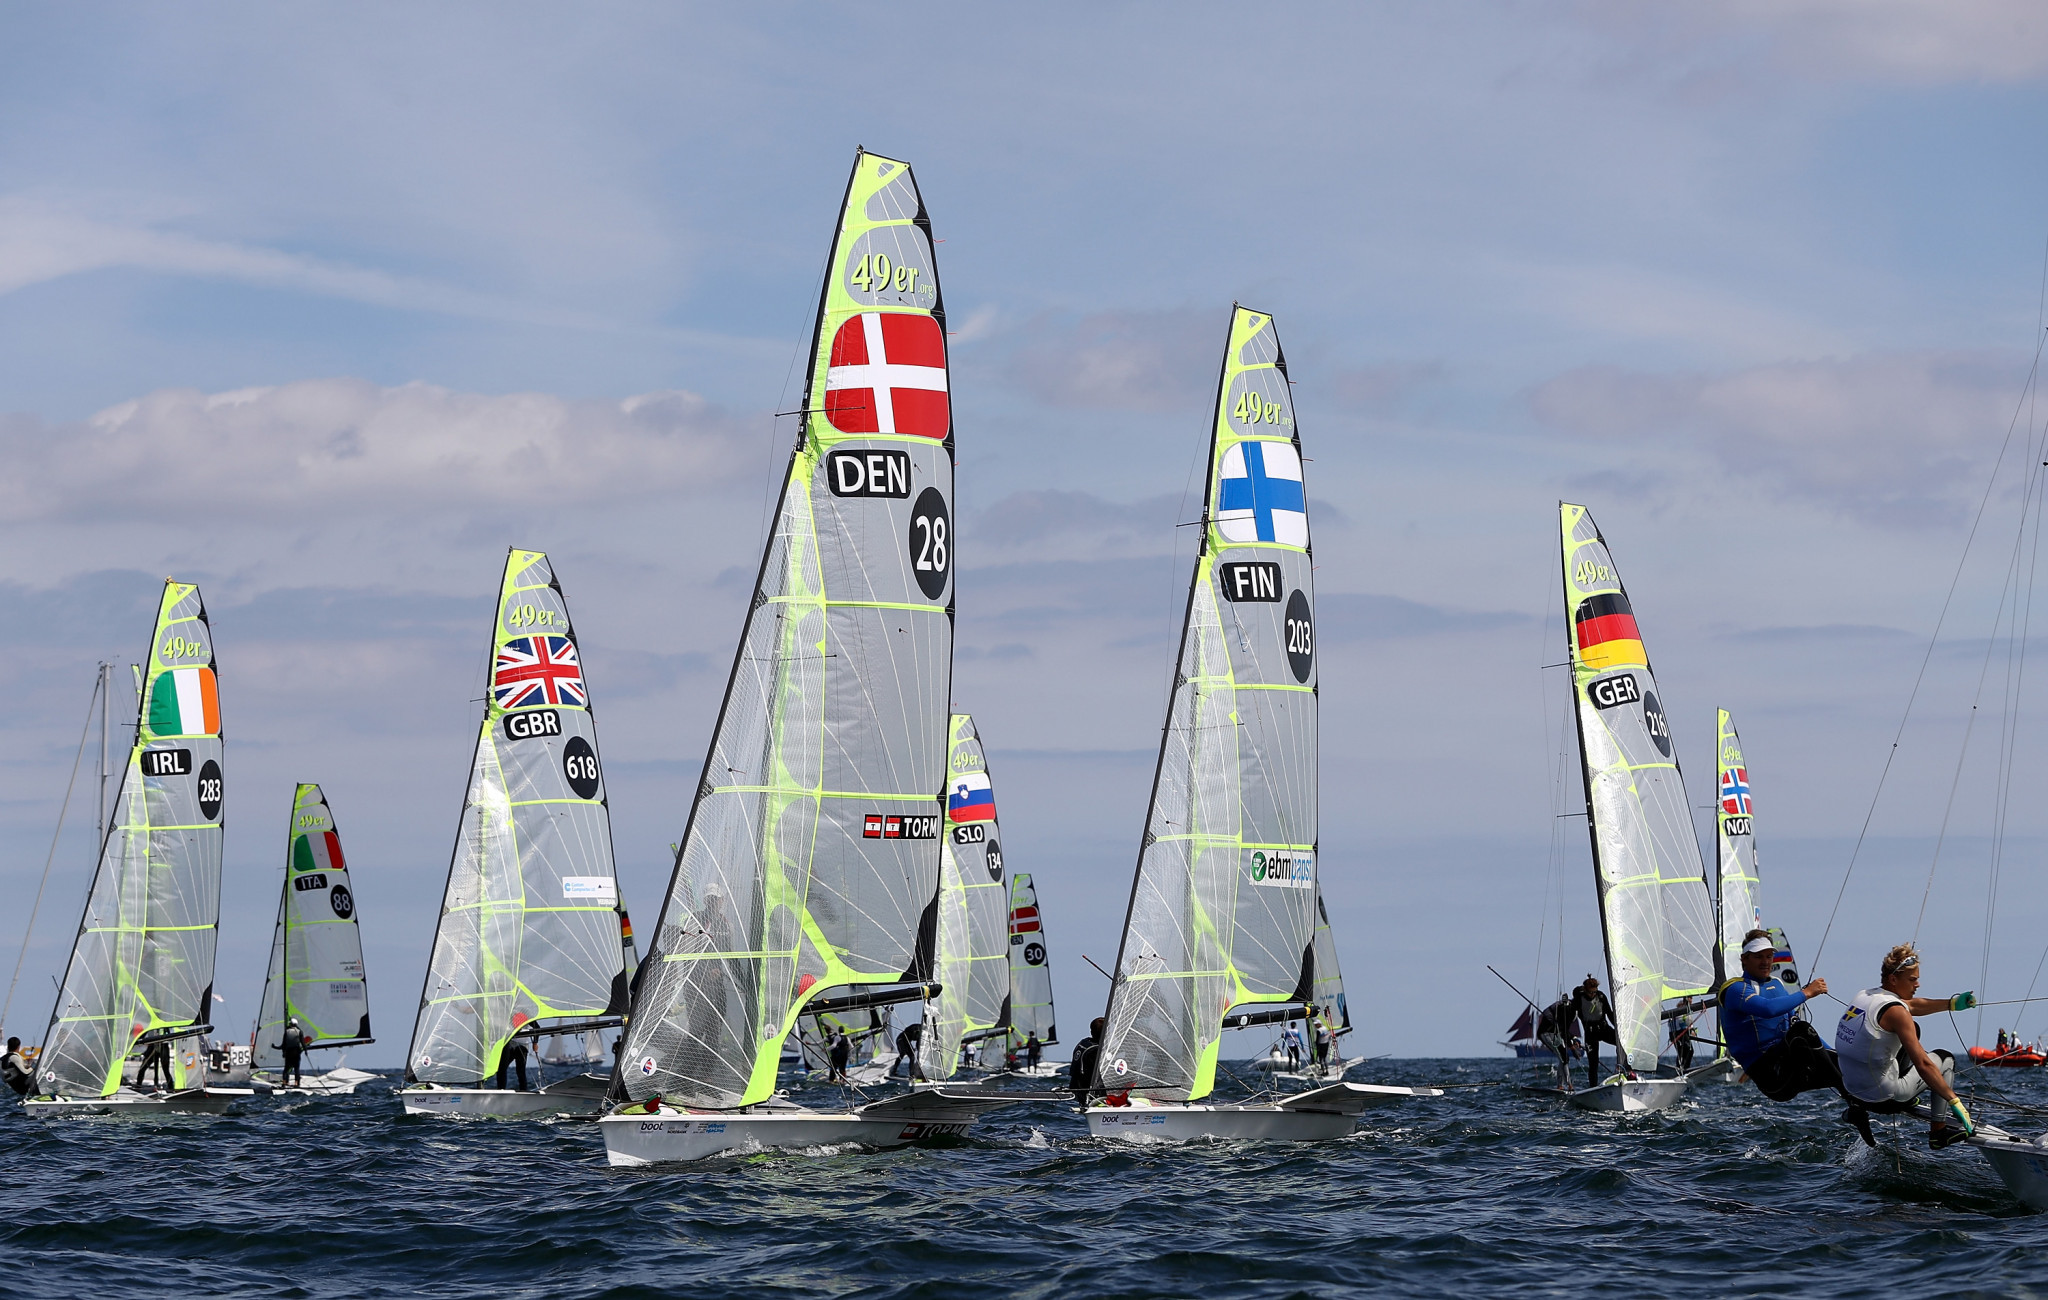 Lima 2019 to feature 49er class after Organising Committee increase sailing athlete quota